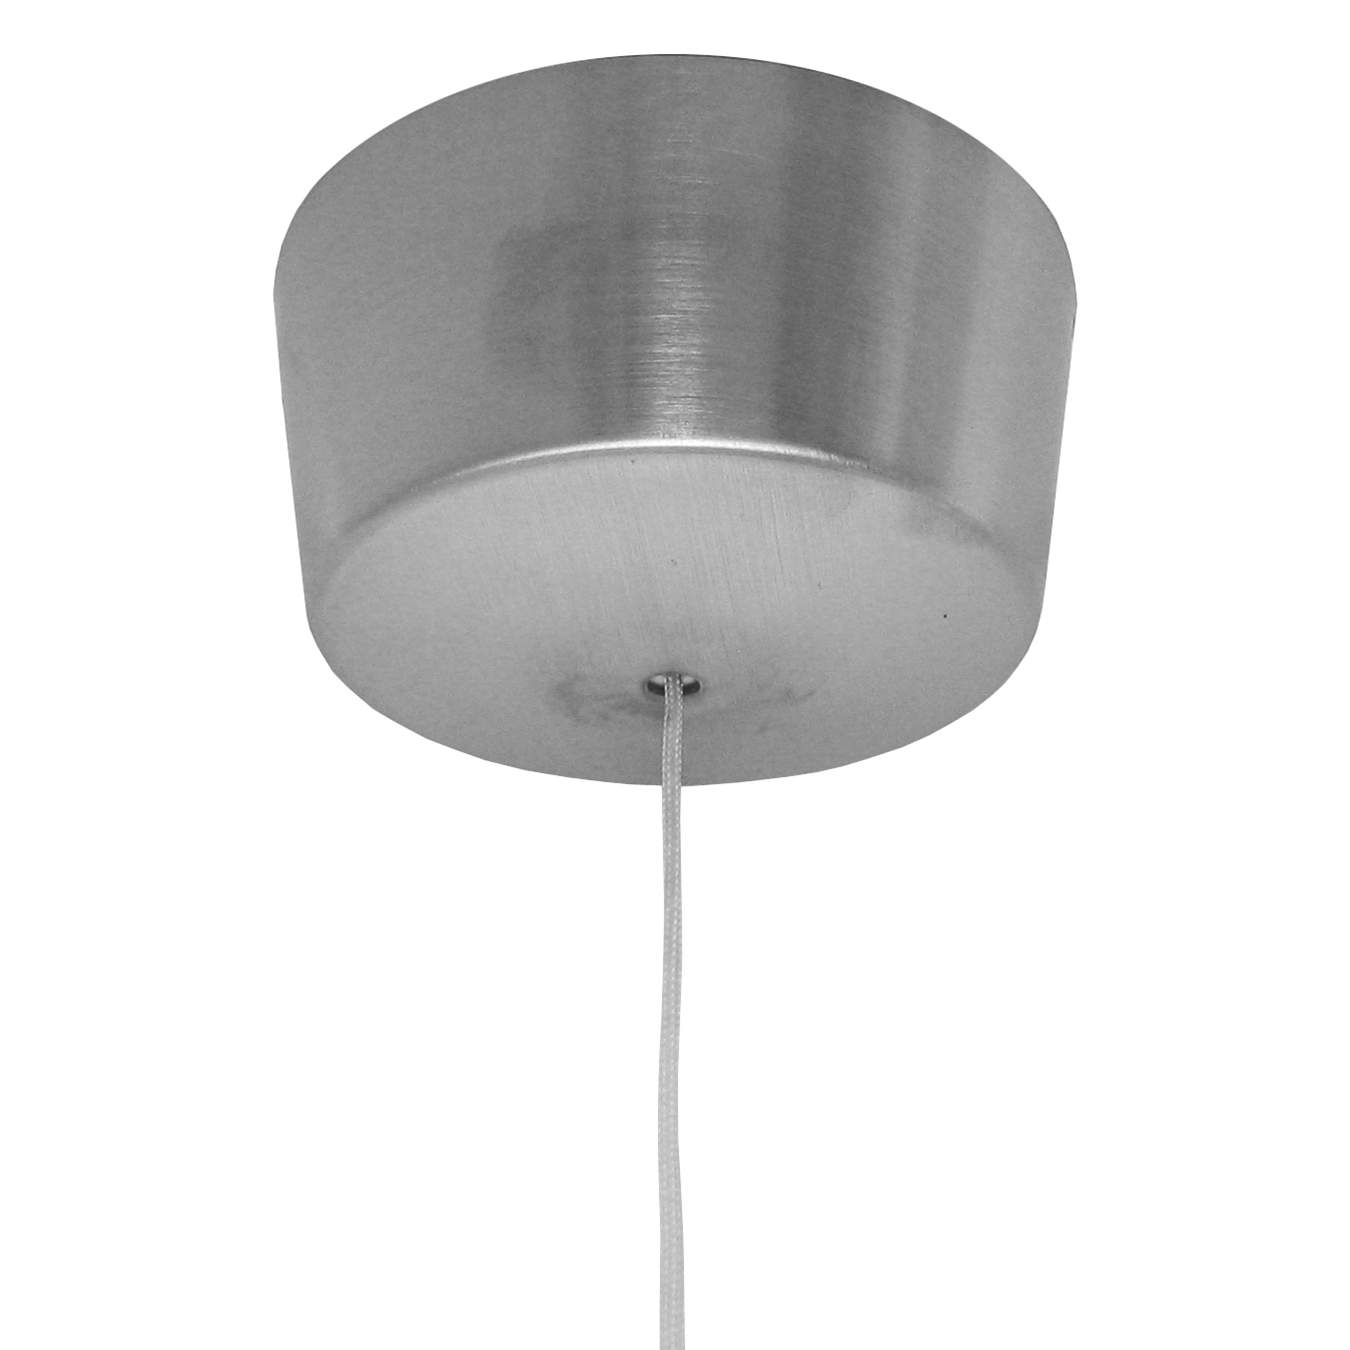 Brushed Chrome Ceiling Rose Pull Cord Switch For Bathrooms Light Pullswitch Designs